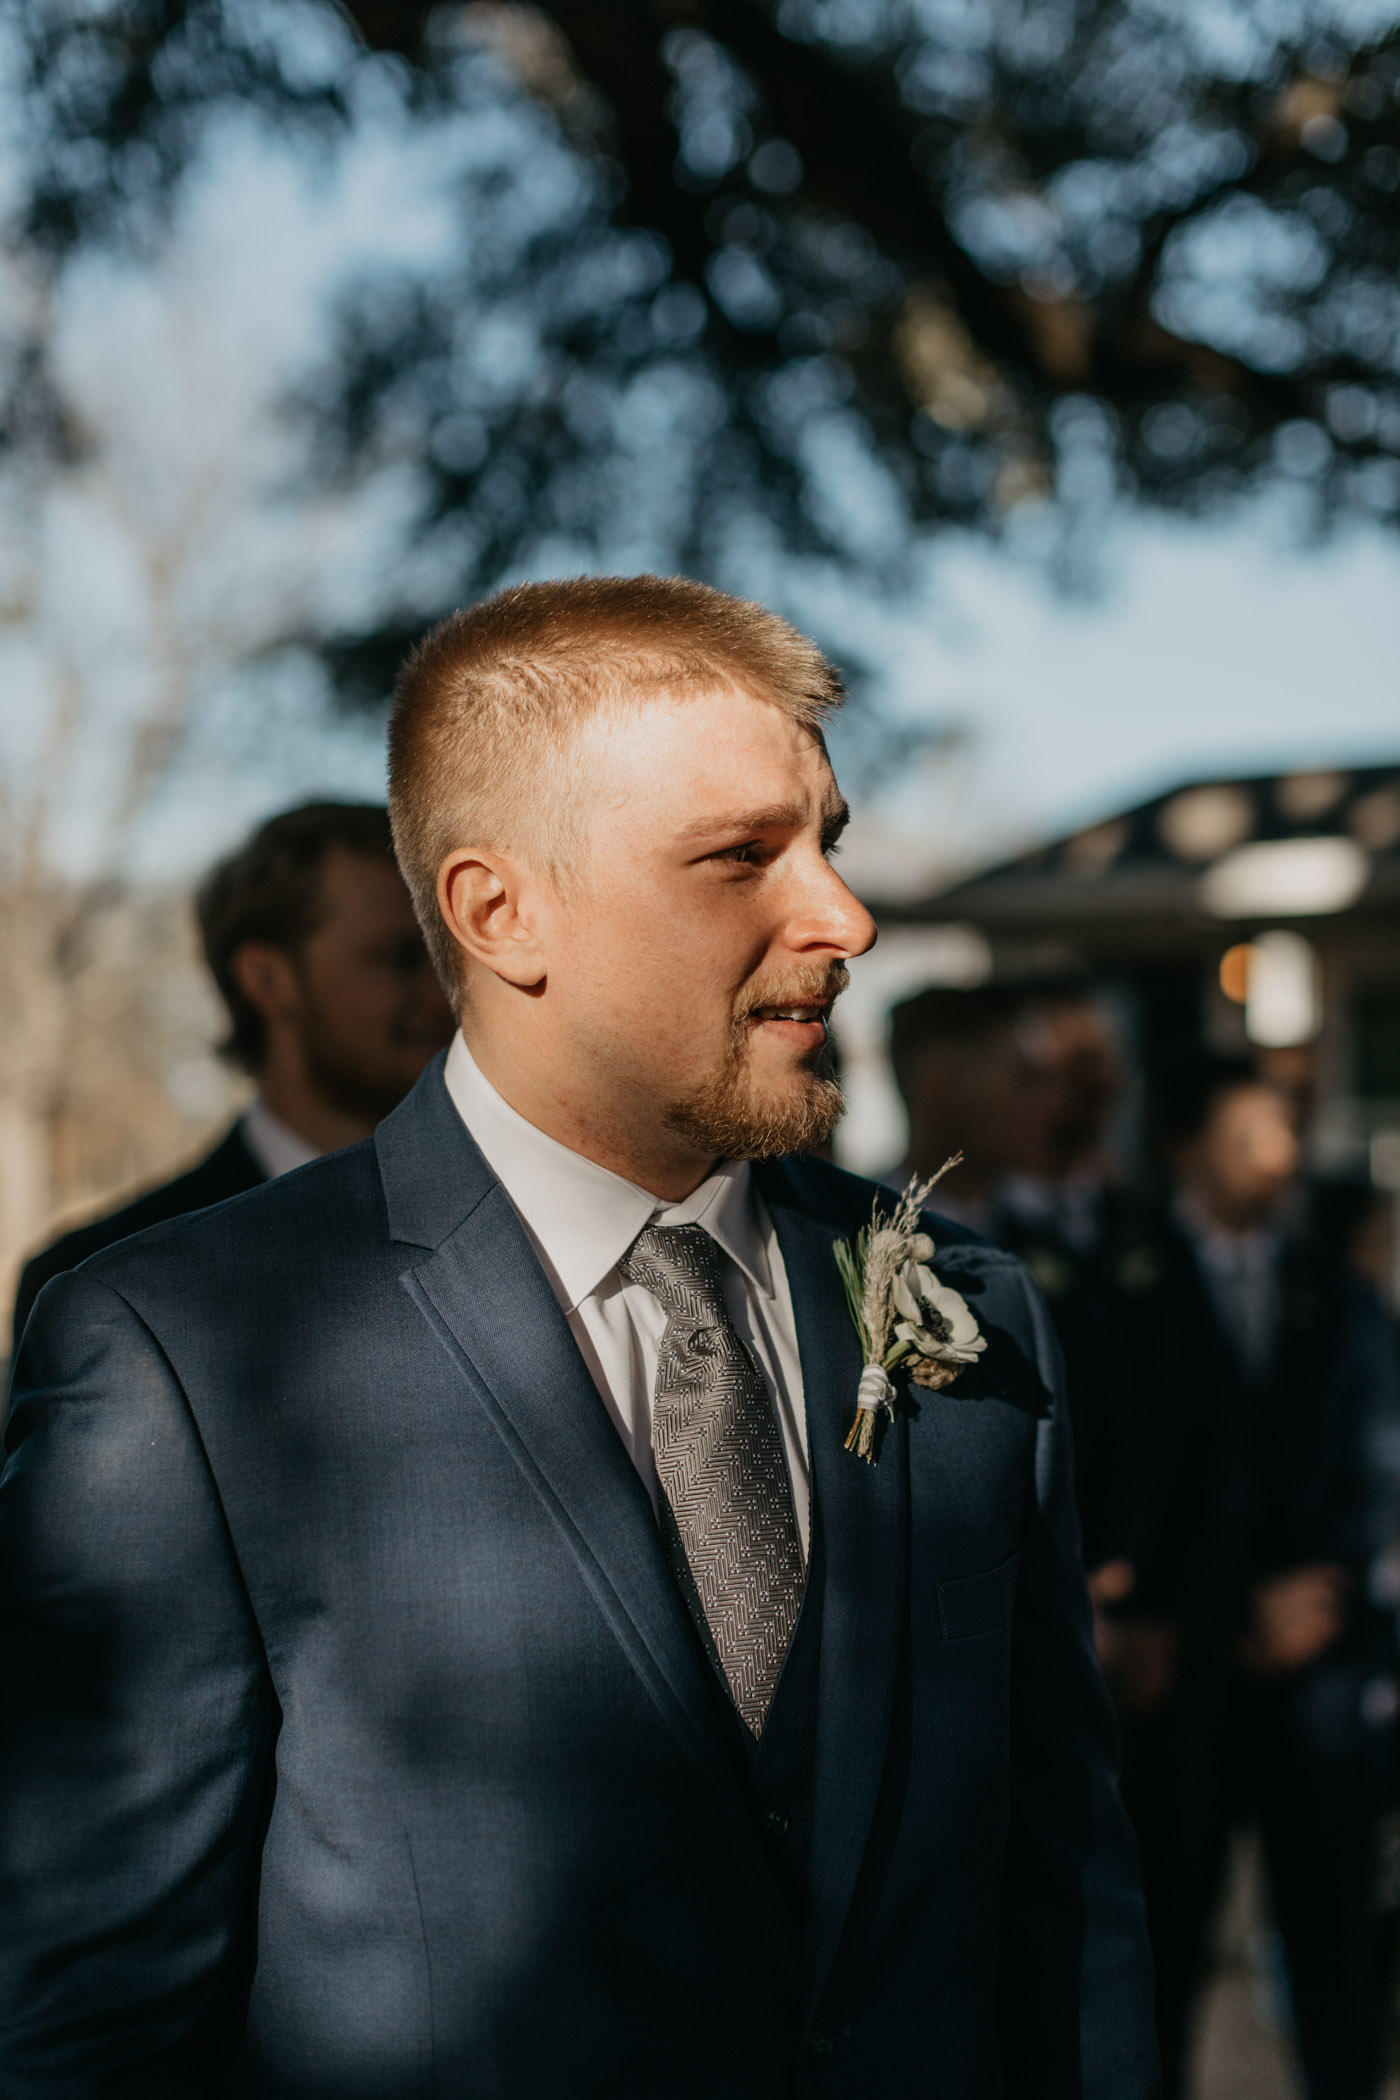 groom crying as he sees his bride walk down the aisle